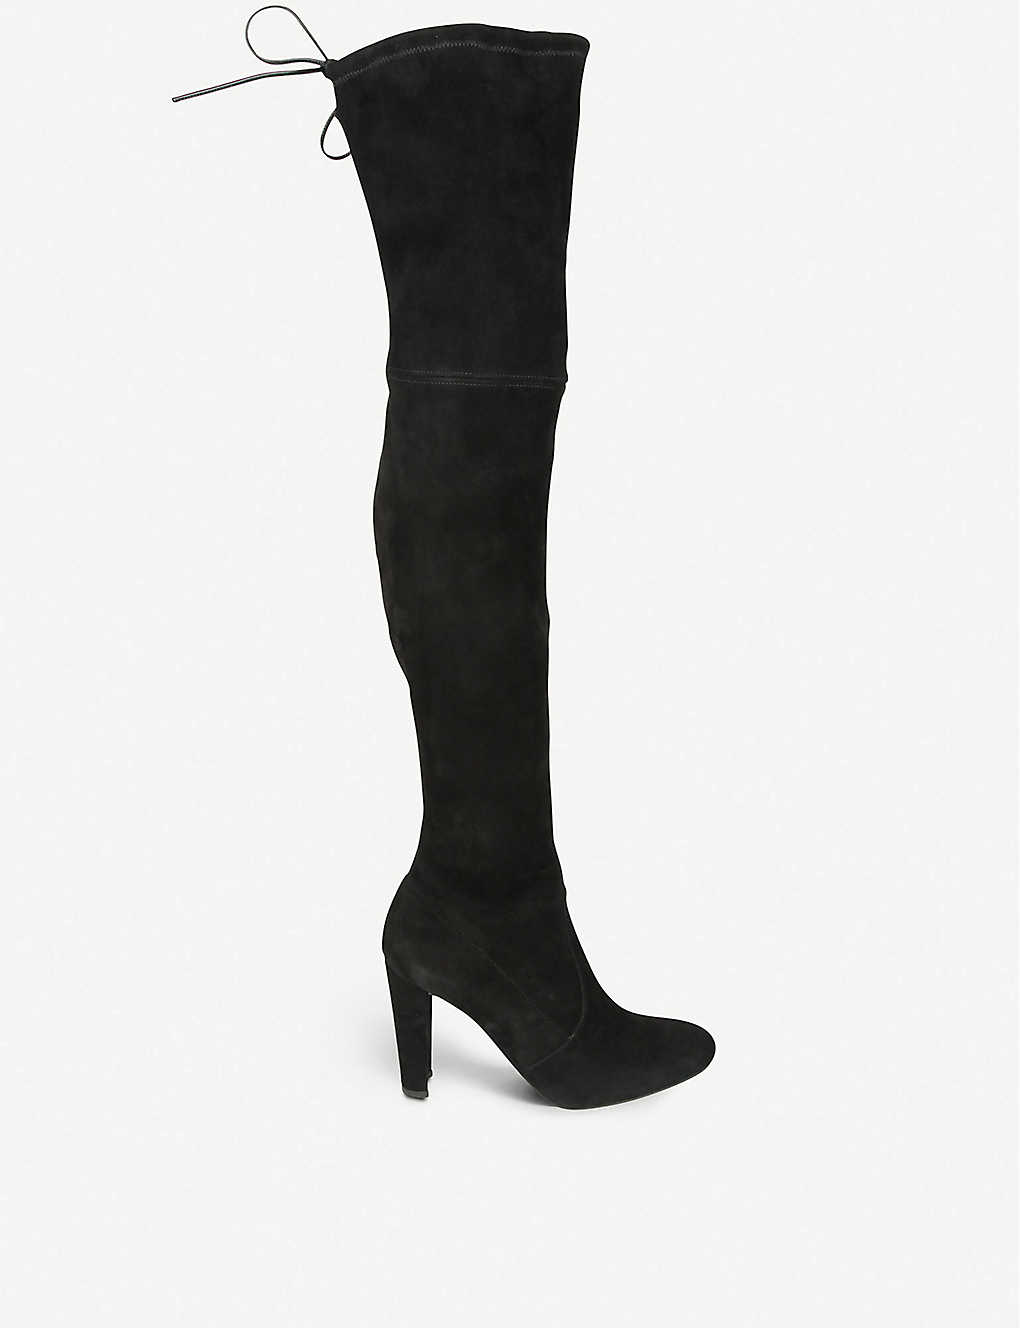 c75eb04d09 STUART WEITZMAN - Highland suede over-the-knee boots | Selfridges.com